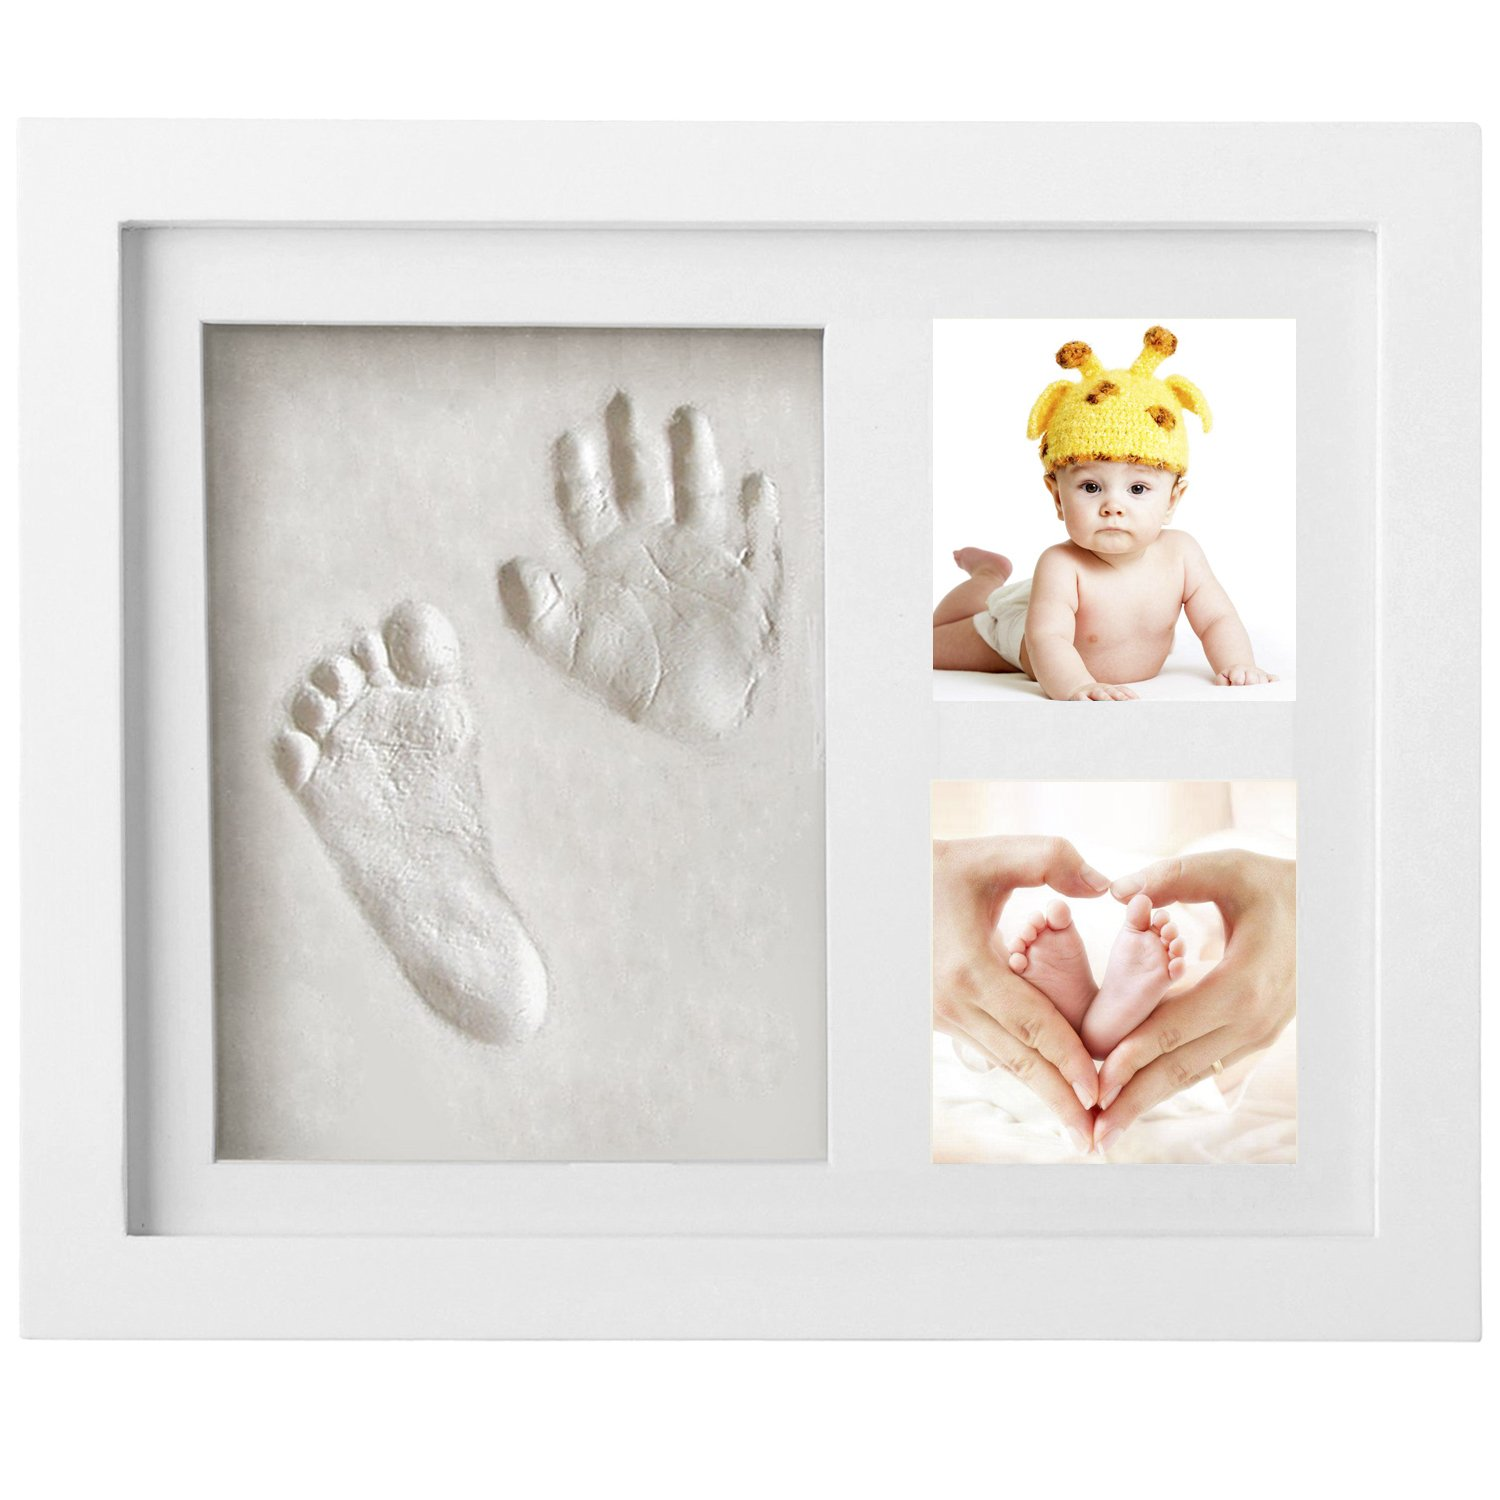 Newlemo Baby Handprint and Footprint Photo Frame Kits Baby Christening Keepsake For Newborn Girls and Boys Baby Shower Presents (3 grids, white) NL-002